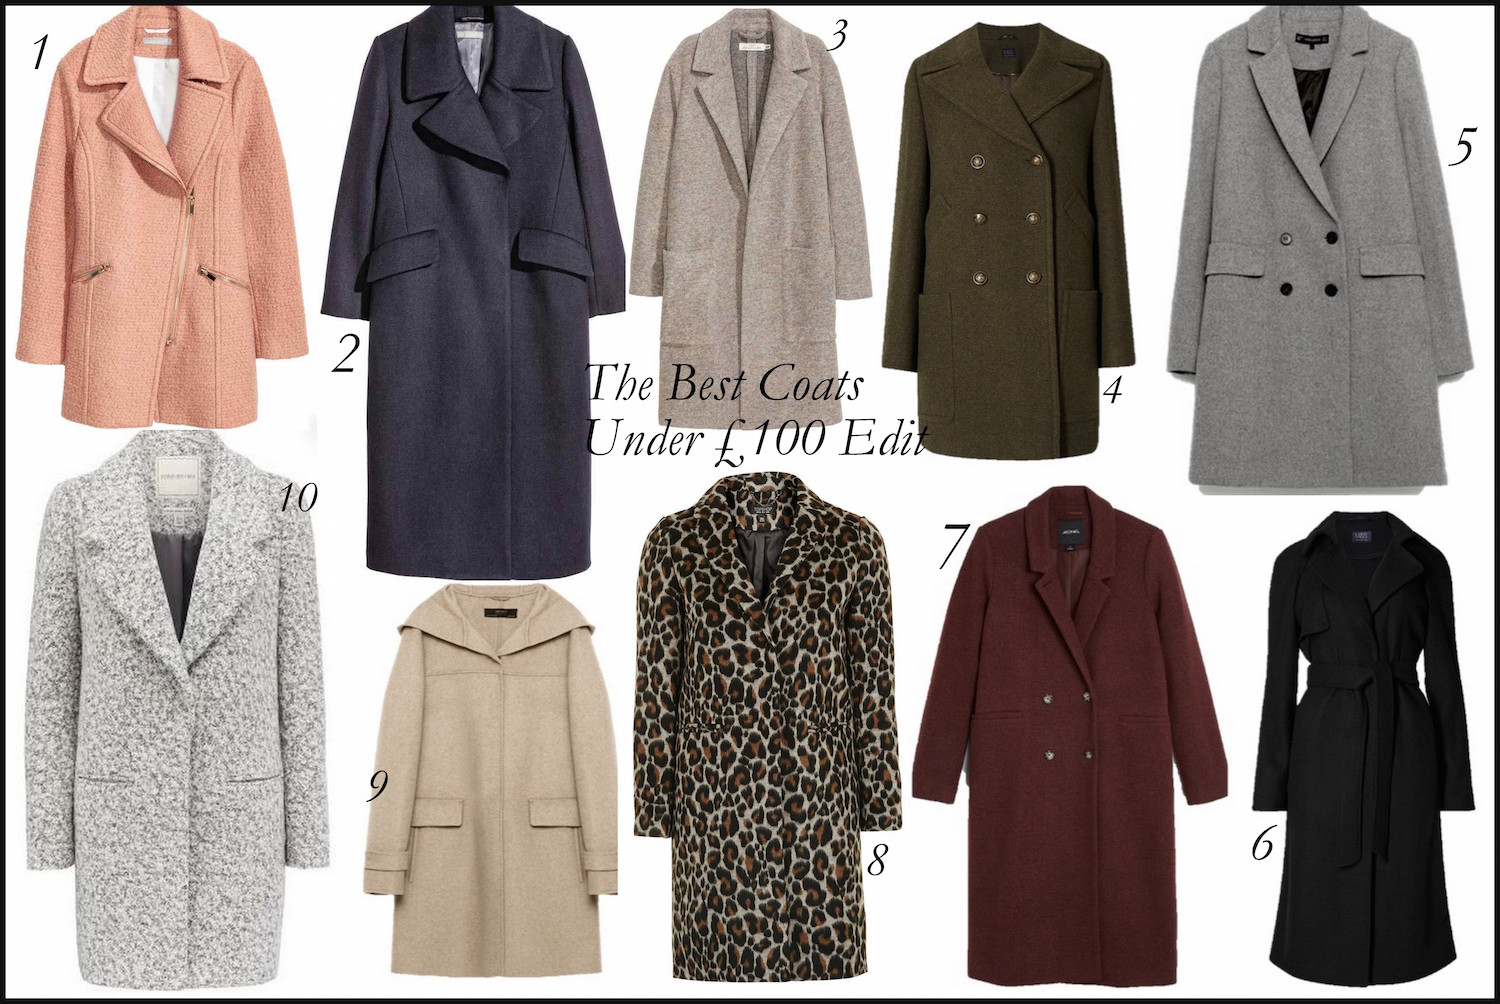 deeb11a16d4 Friday Finds  The Best Coats Under £100   Wolf   Stag